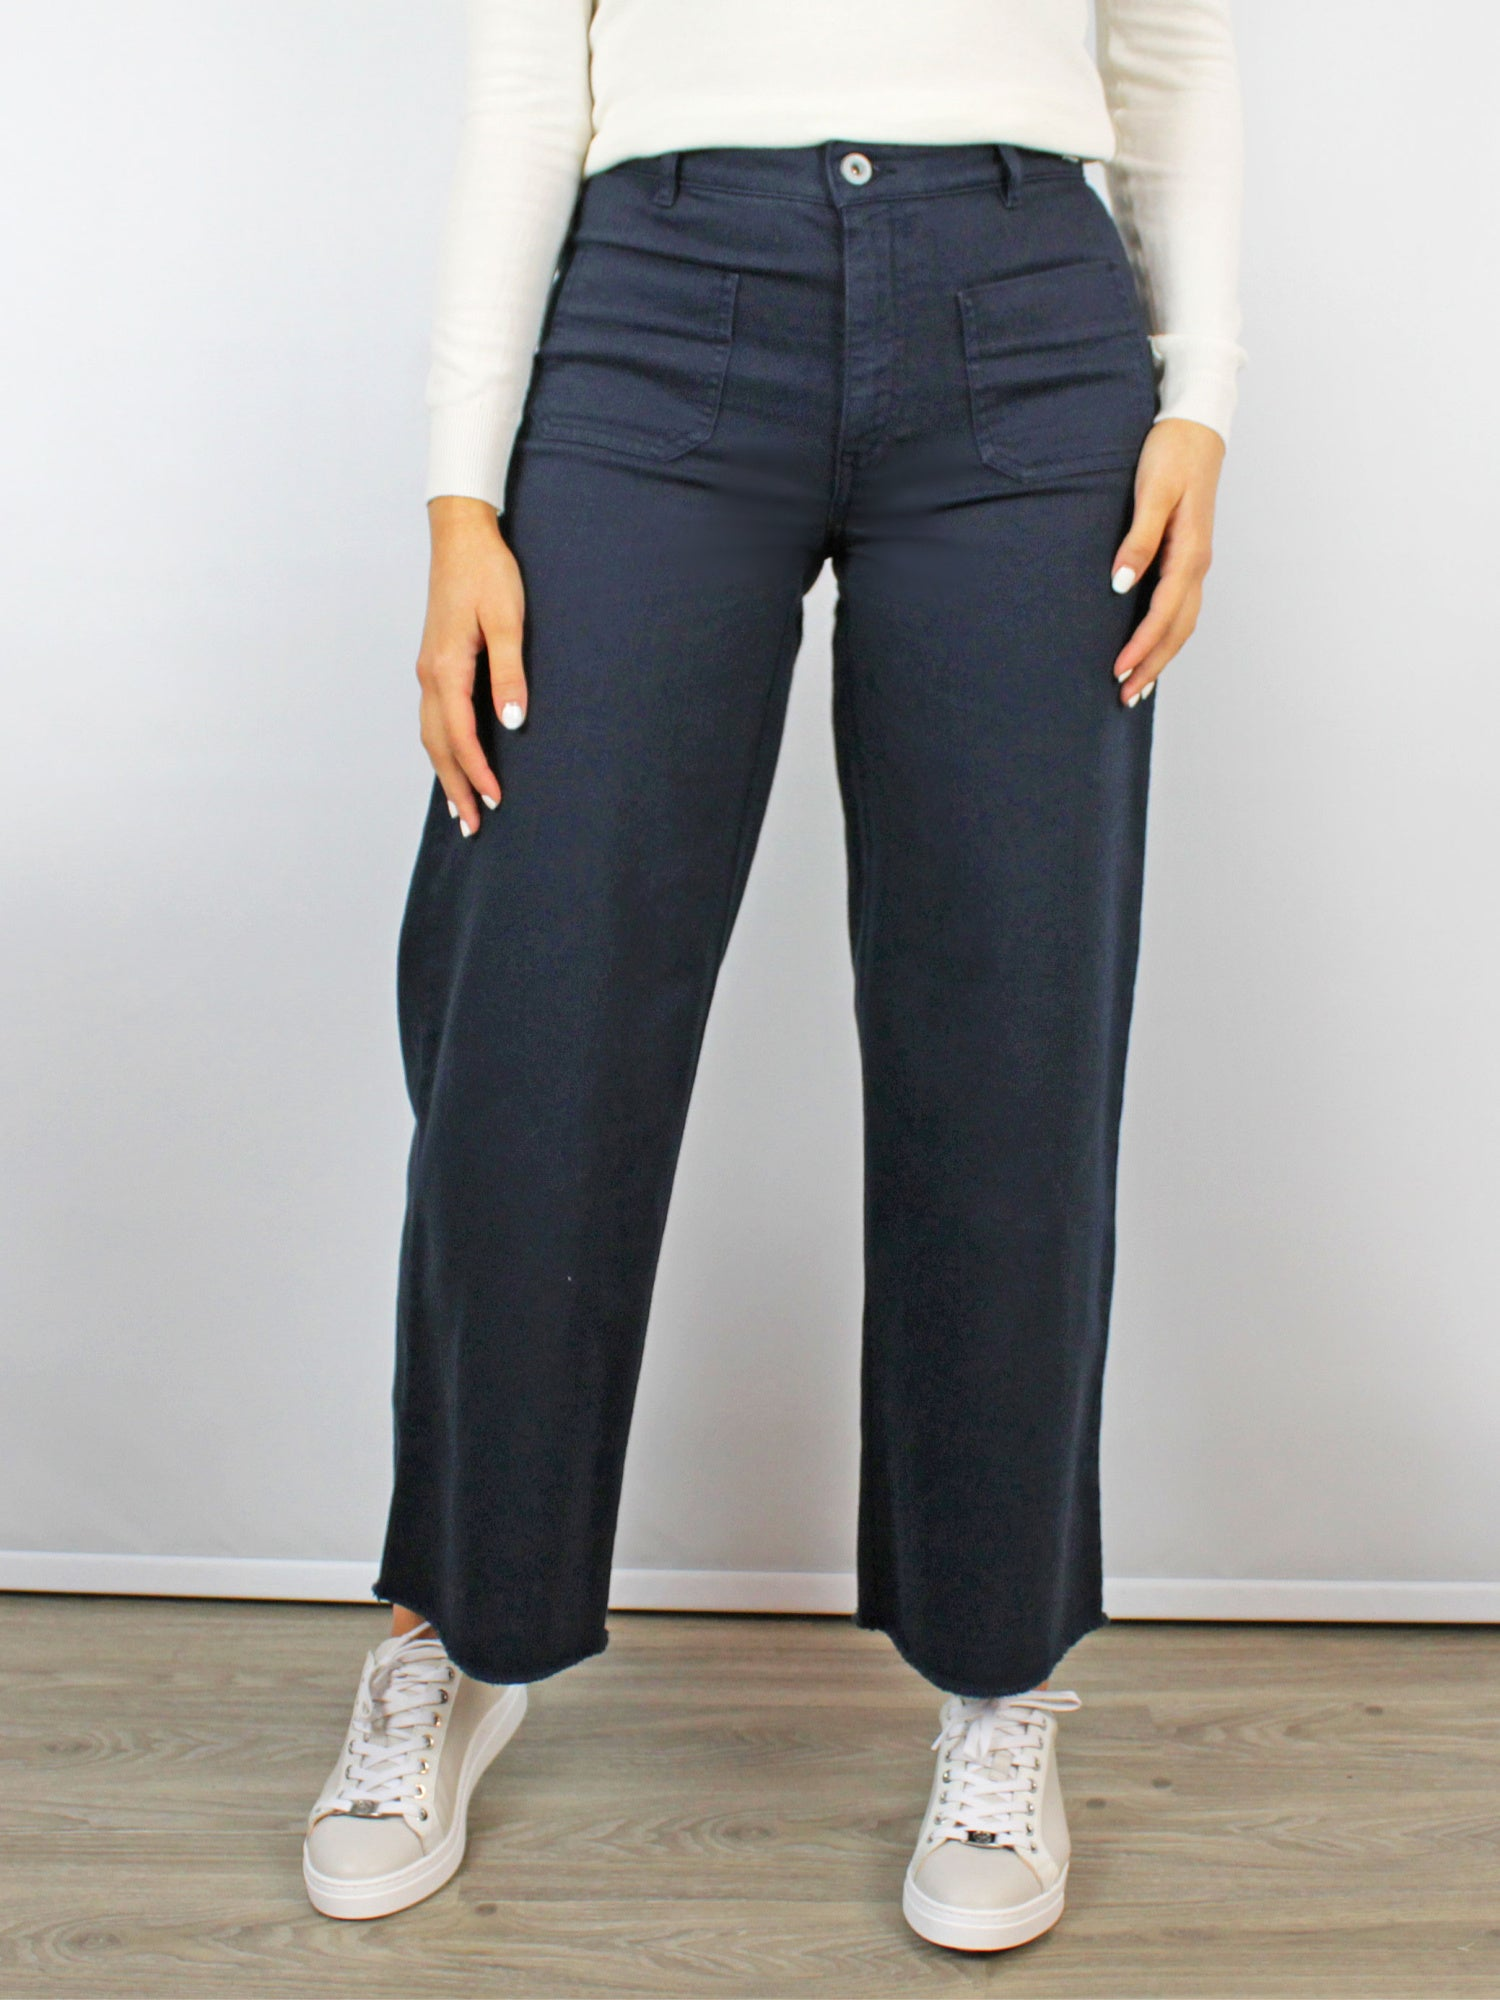 Ottod'Ame Culotte Blue Jeans